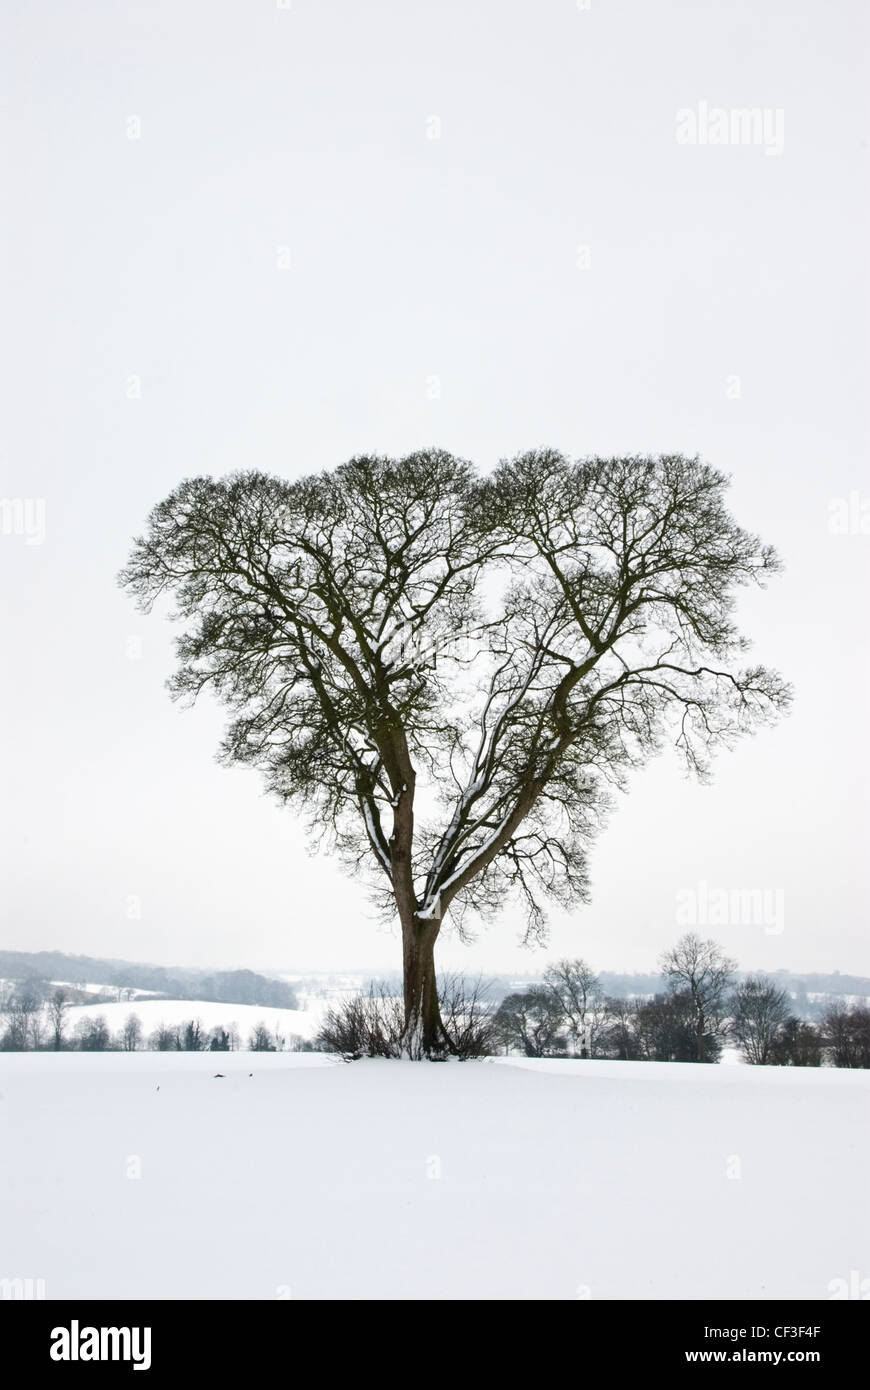 A leafless tree in a winter landscape at Ashridge in Hertfordshire. - Stock Image